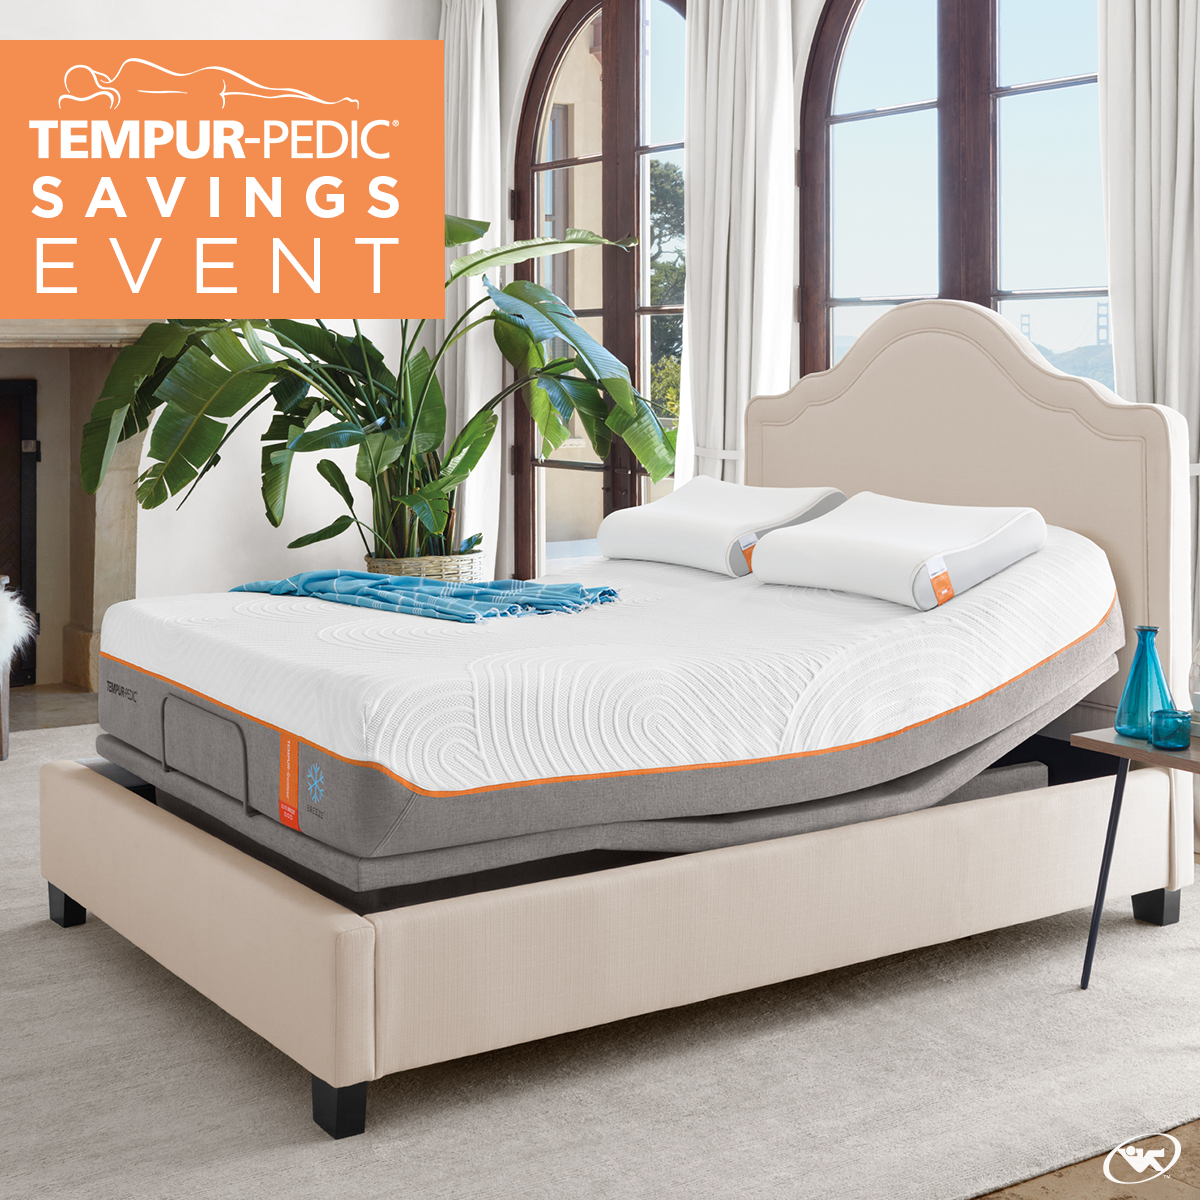 Save Big Sleep Easy Save Up To 500 On Select Tempur Pedic Adjustable Mattress Sets Ask Our Associates About Our 60 Mo Mattress Sets Most Comfortable Bed Mattress